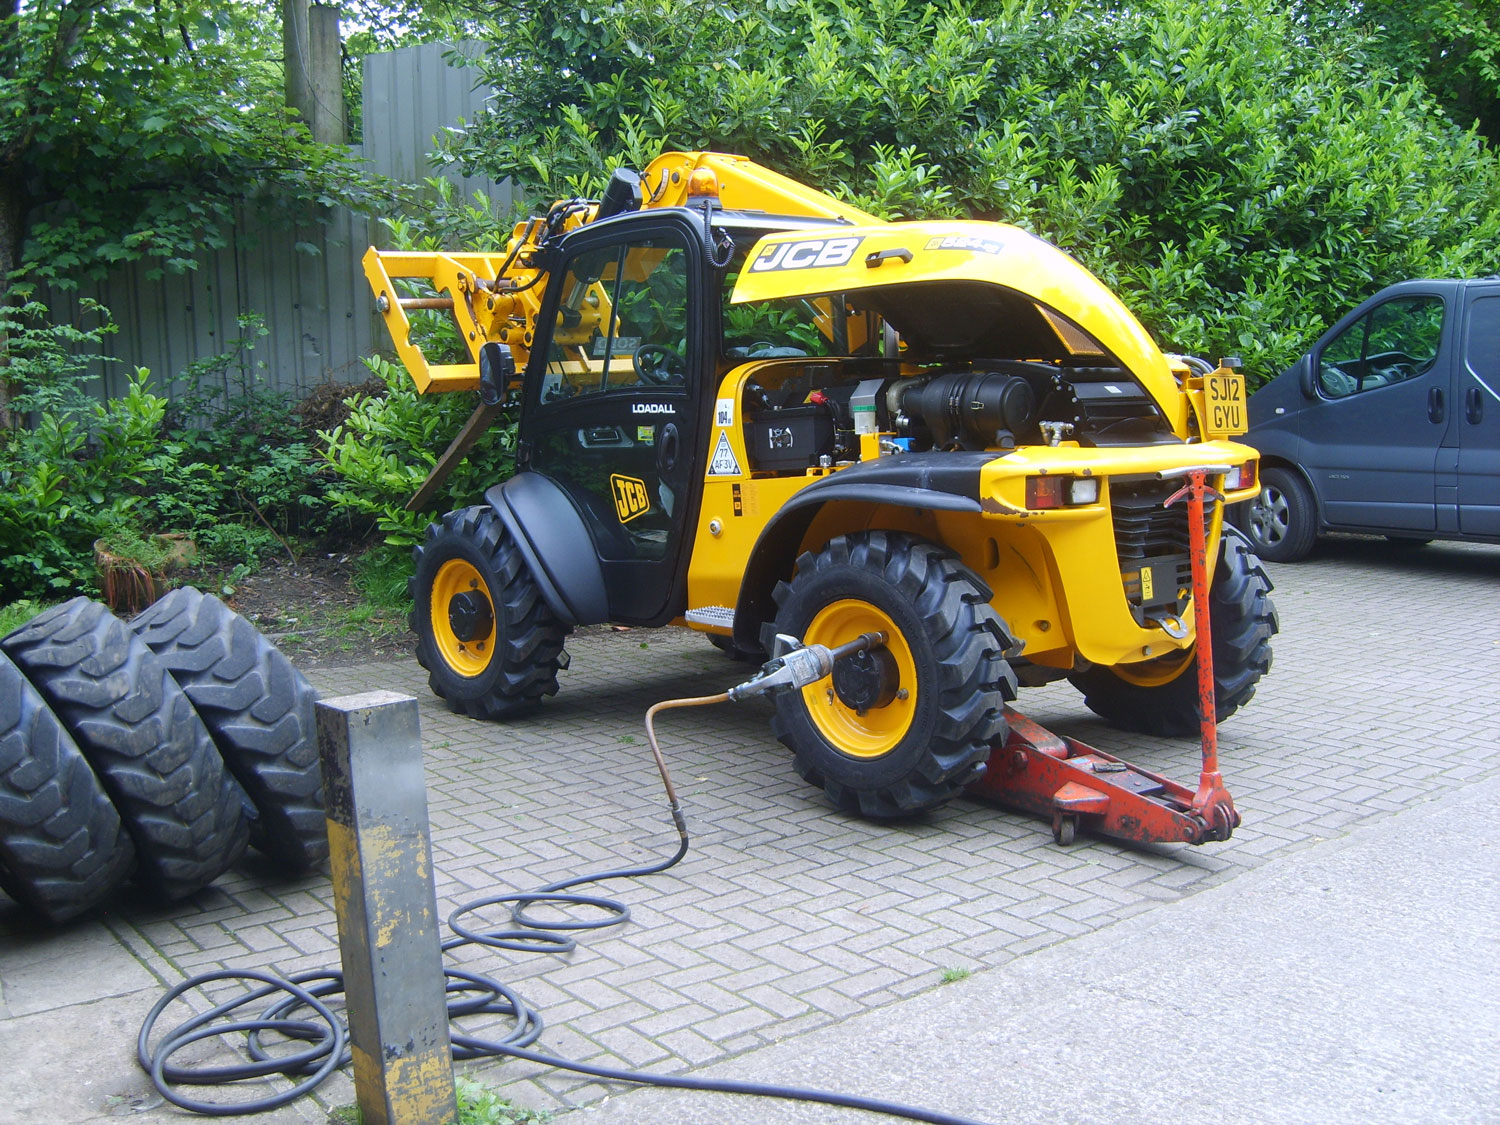 North-Central-Tyres-Load-All-JCB